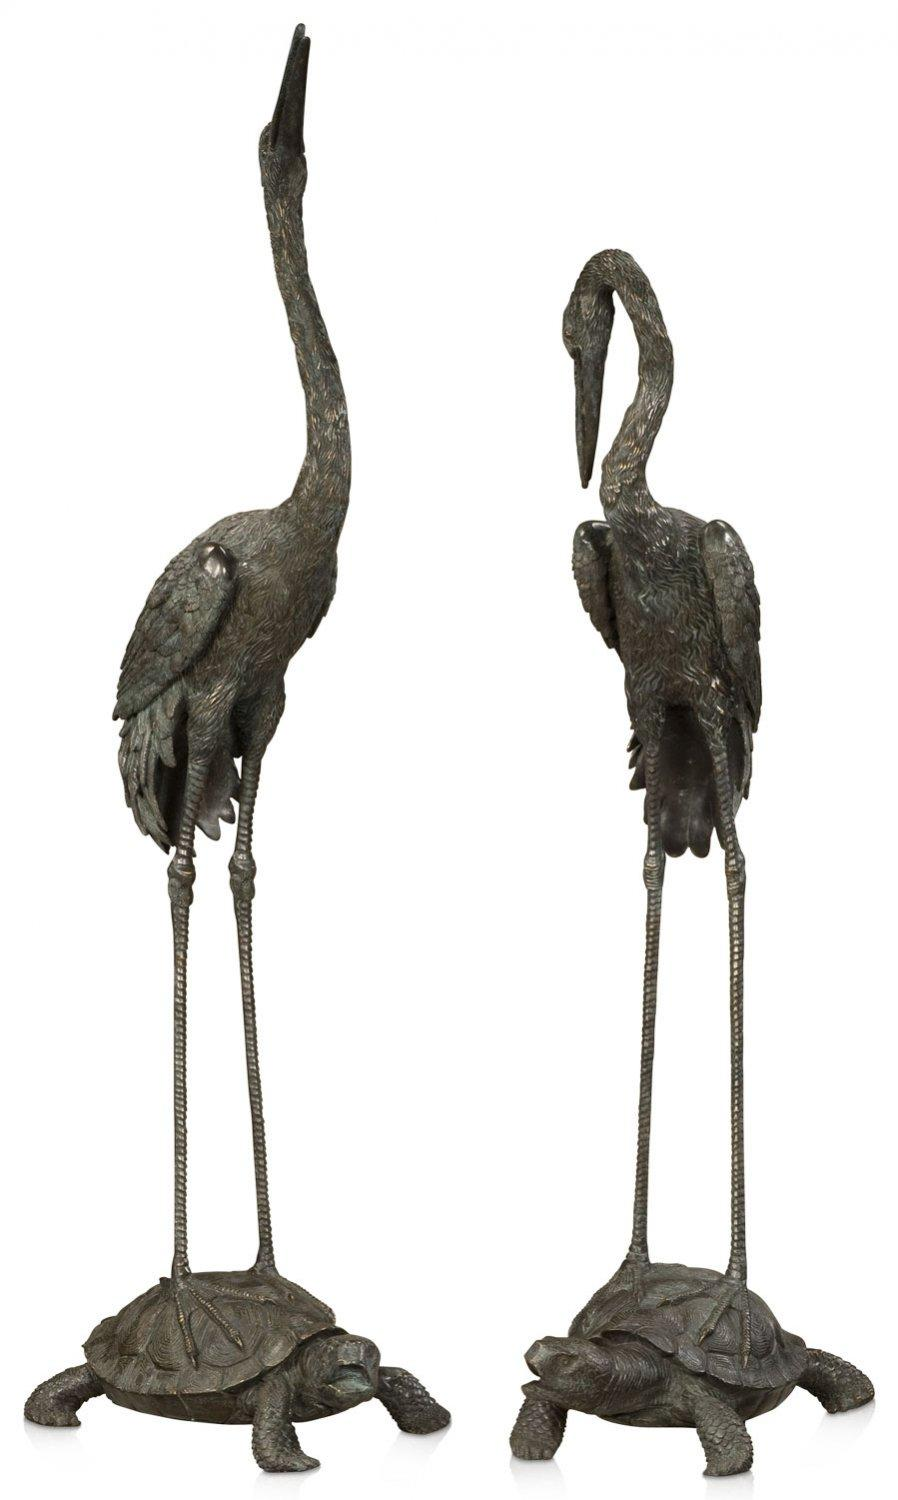 A set of two large verdigris brass cranes